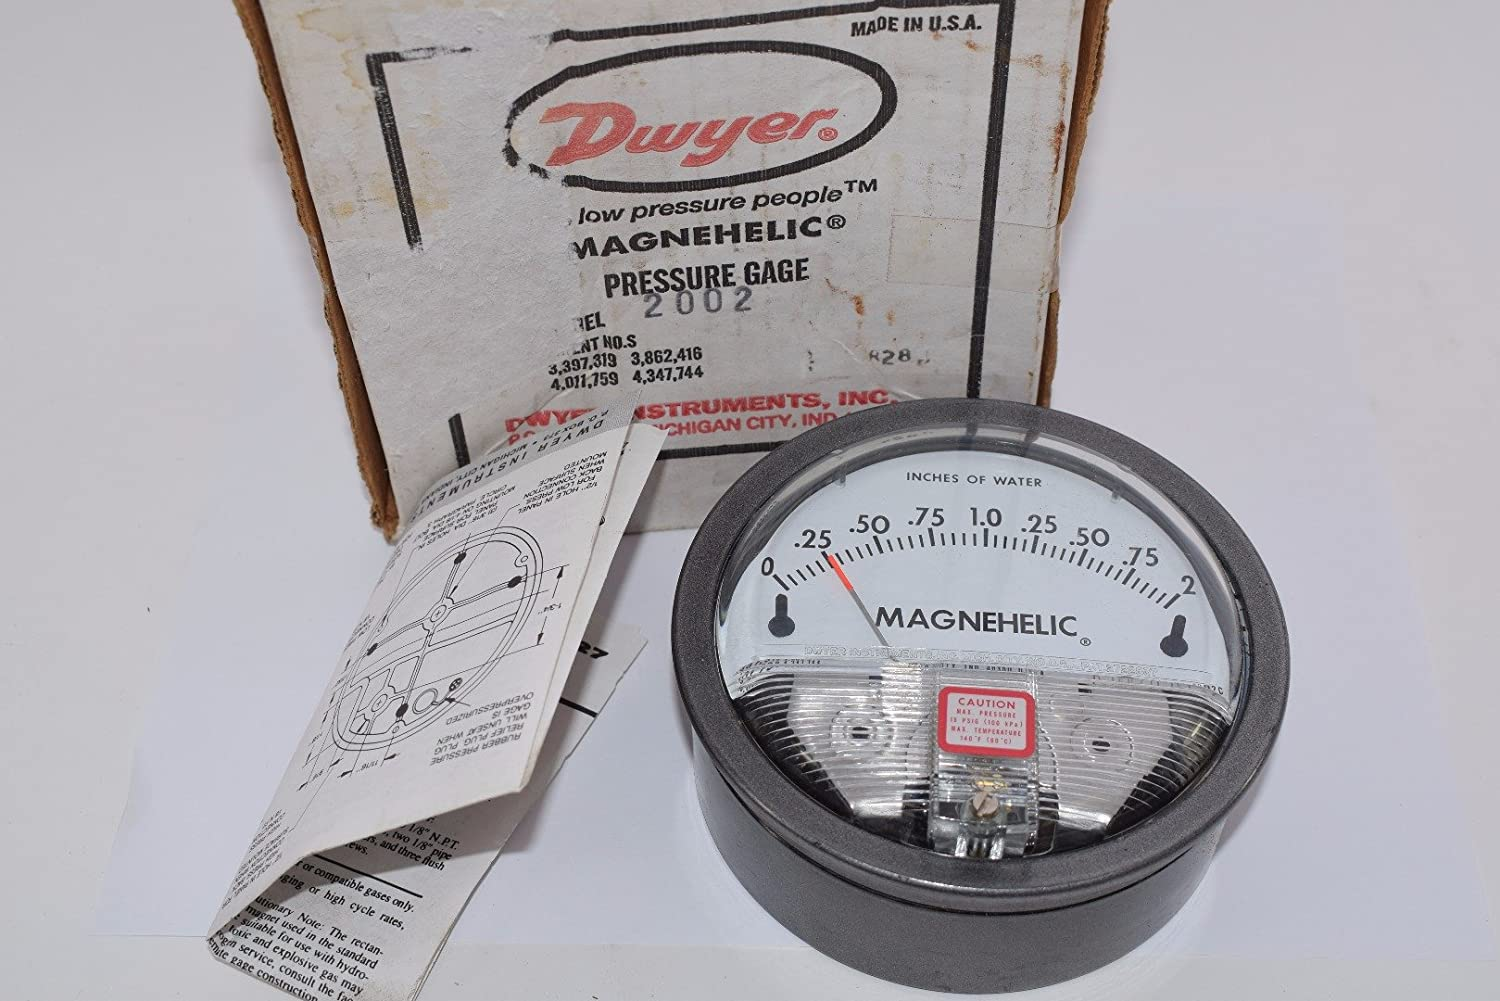 Dwyer® Magnehelic® Differential Pressure Gage, 2002,: 0-2